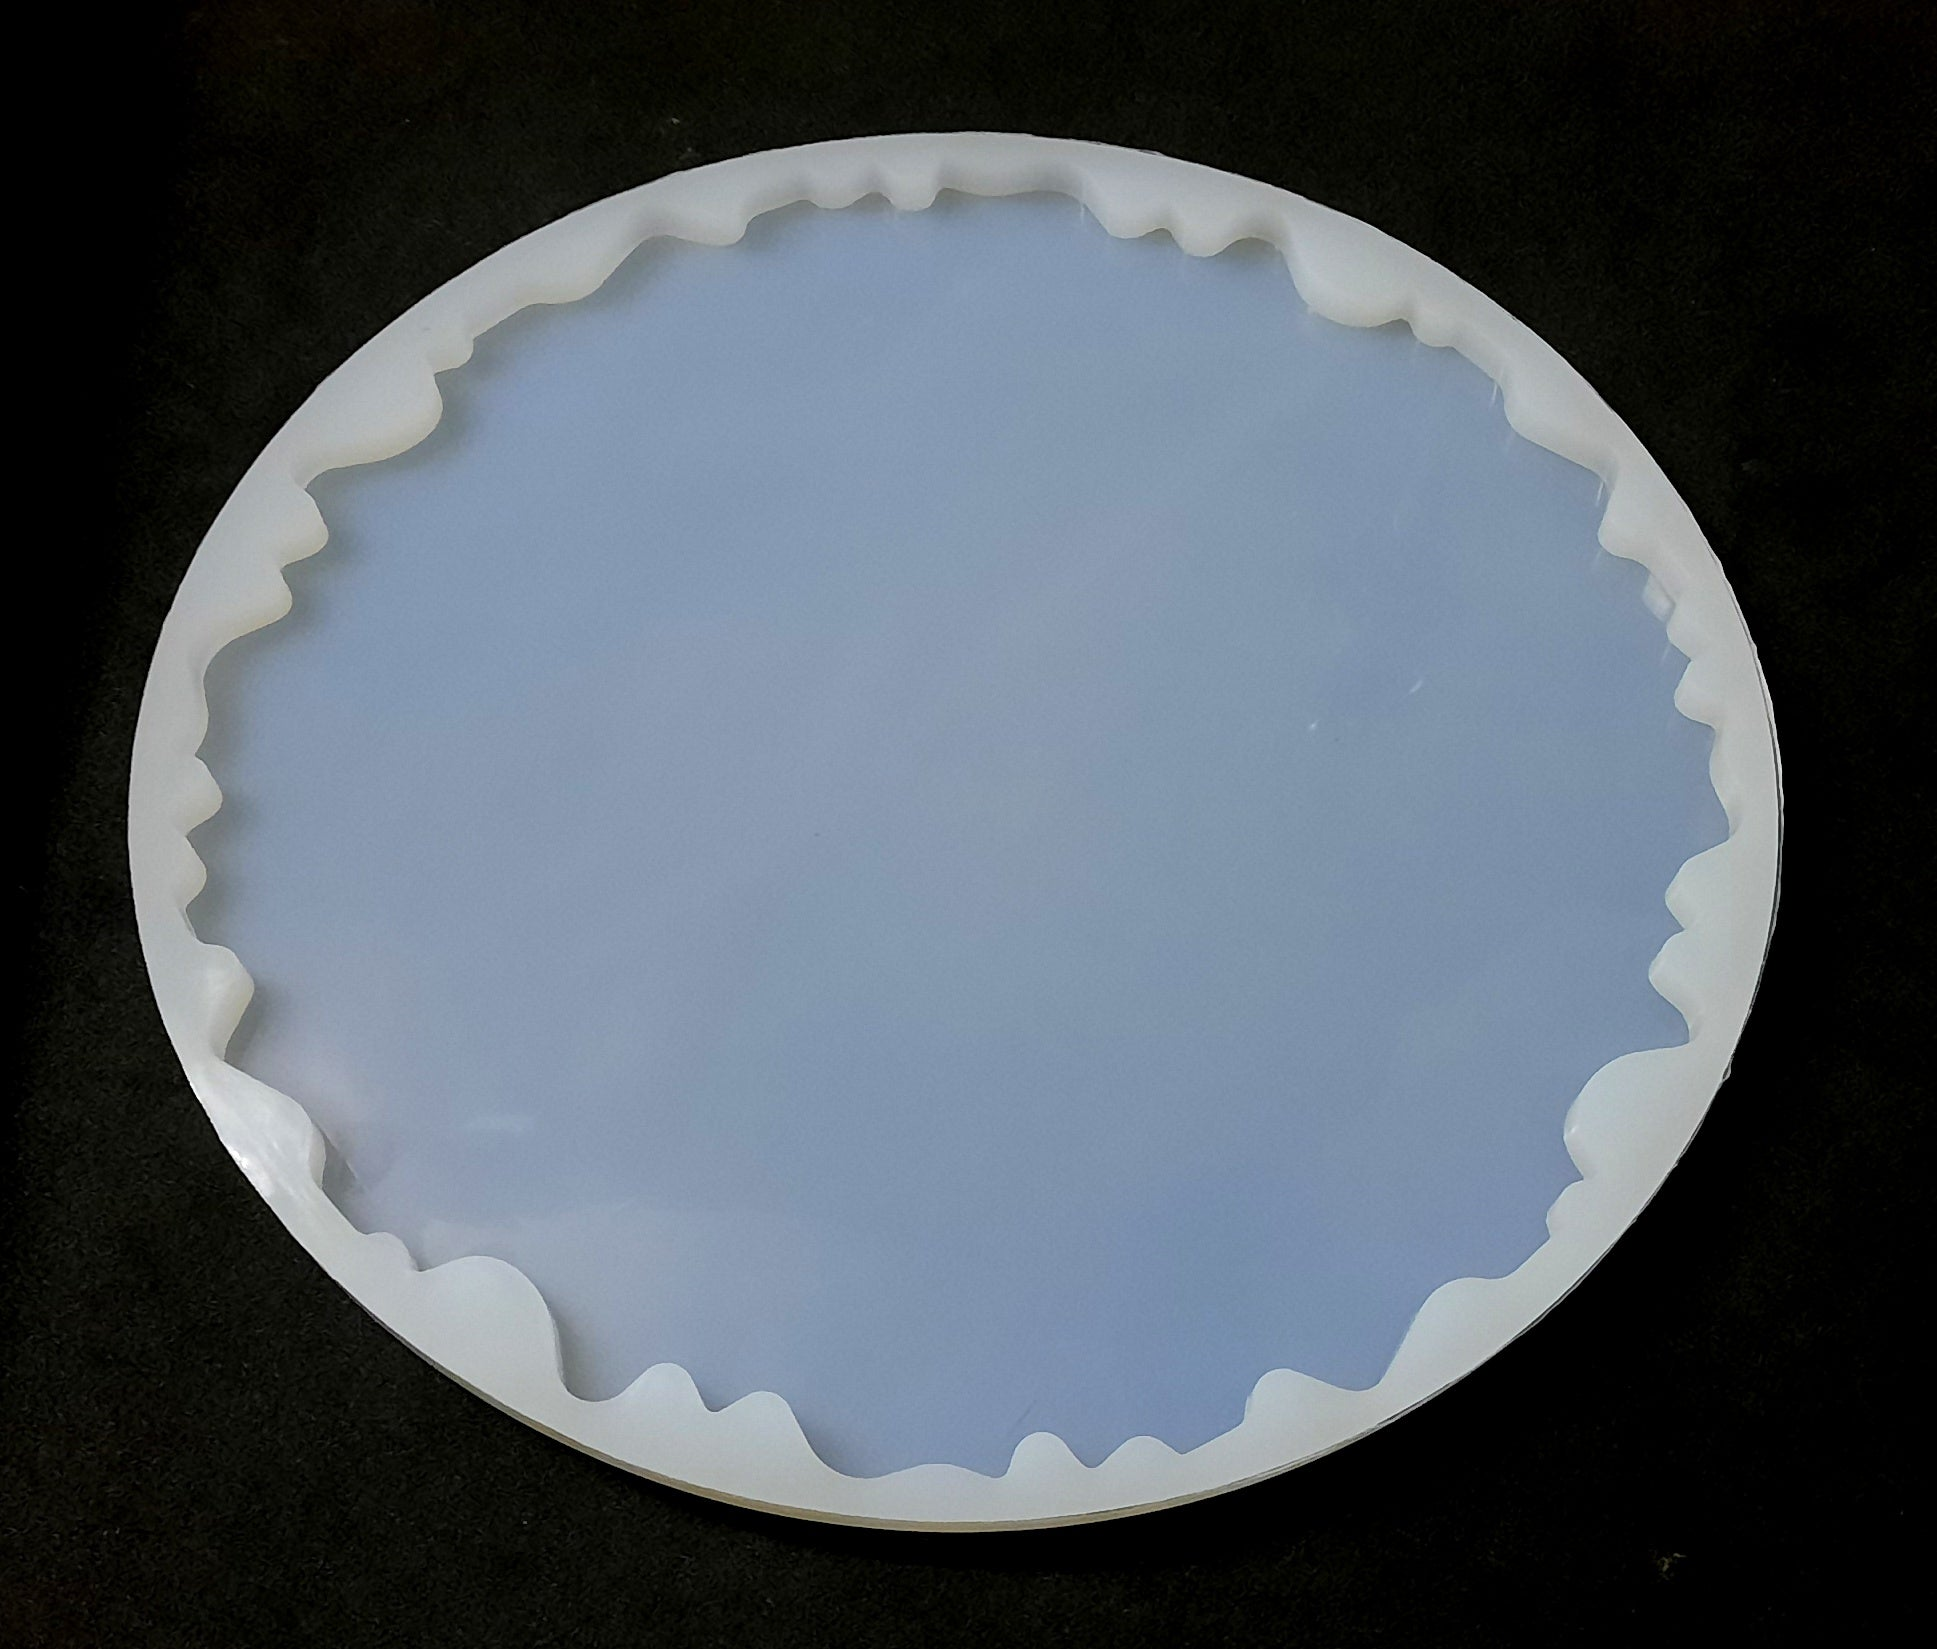 Irregular tray plate mold